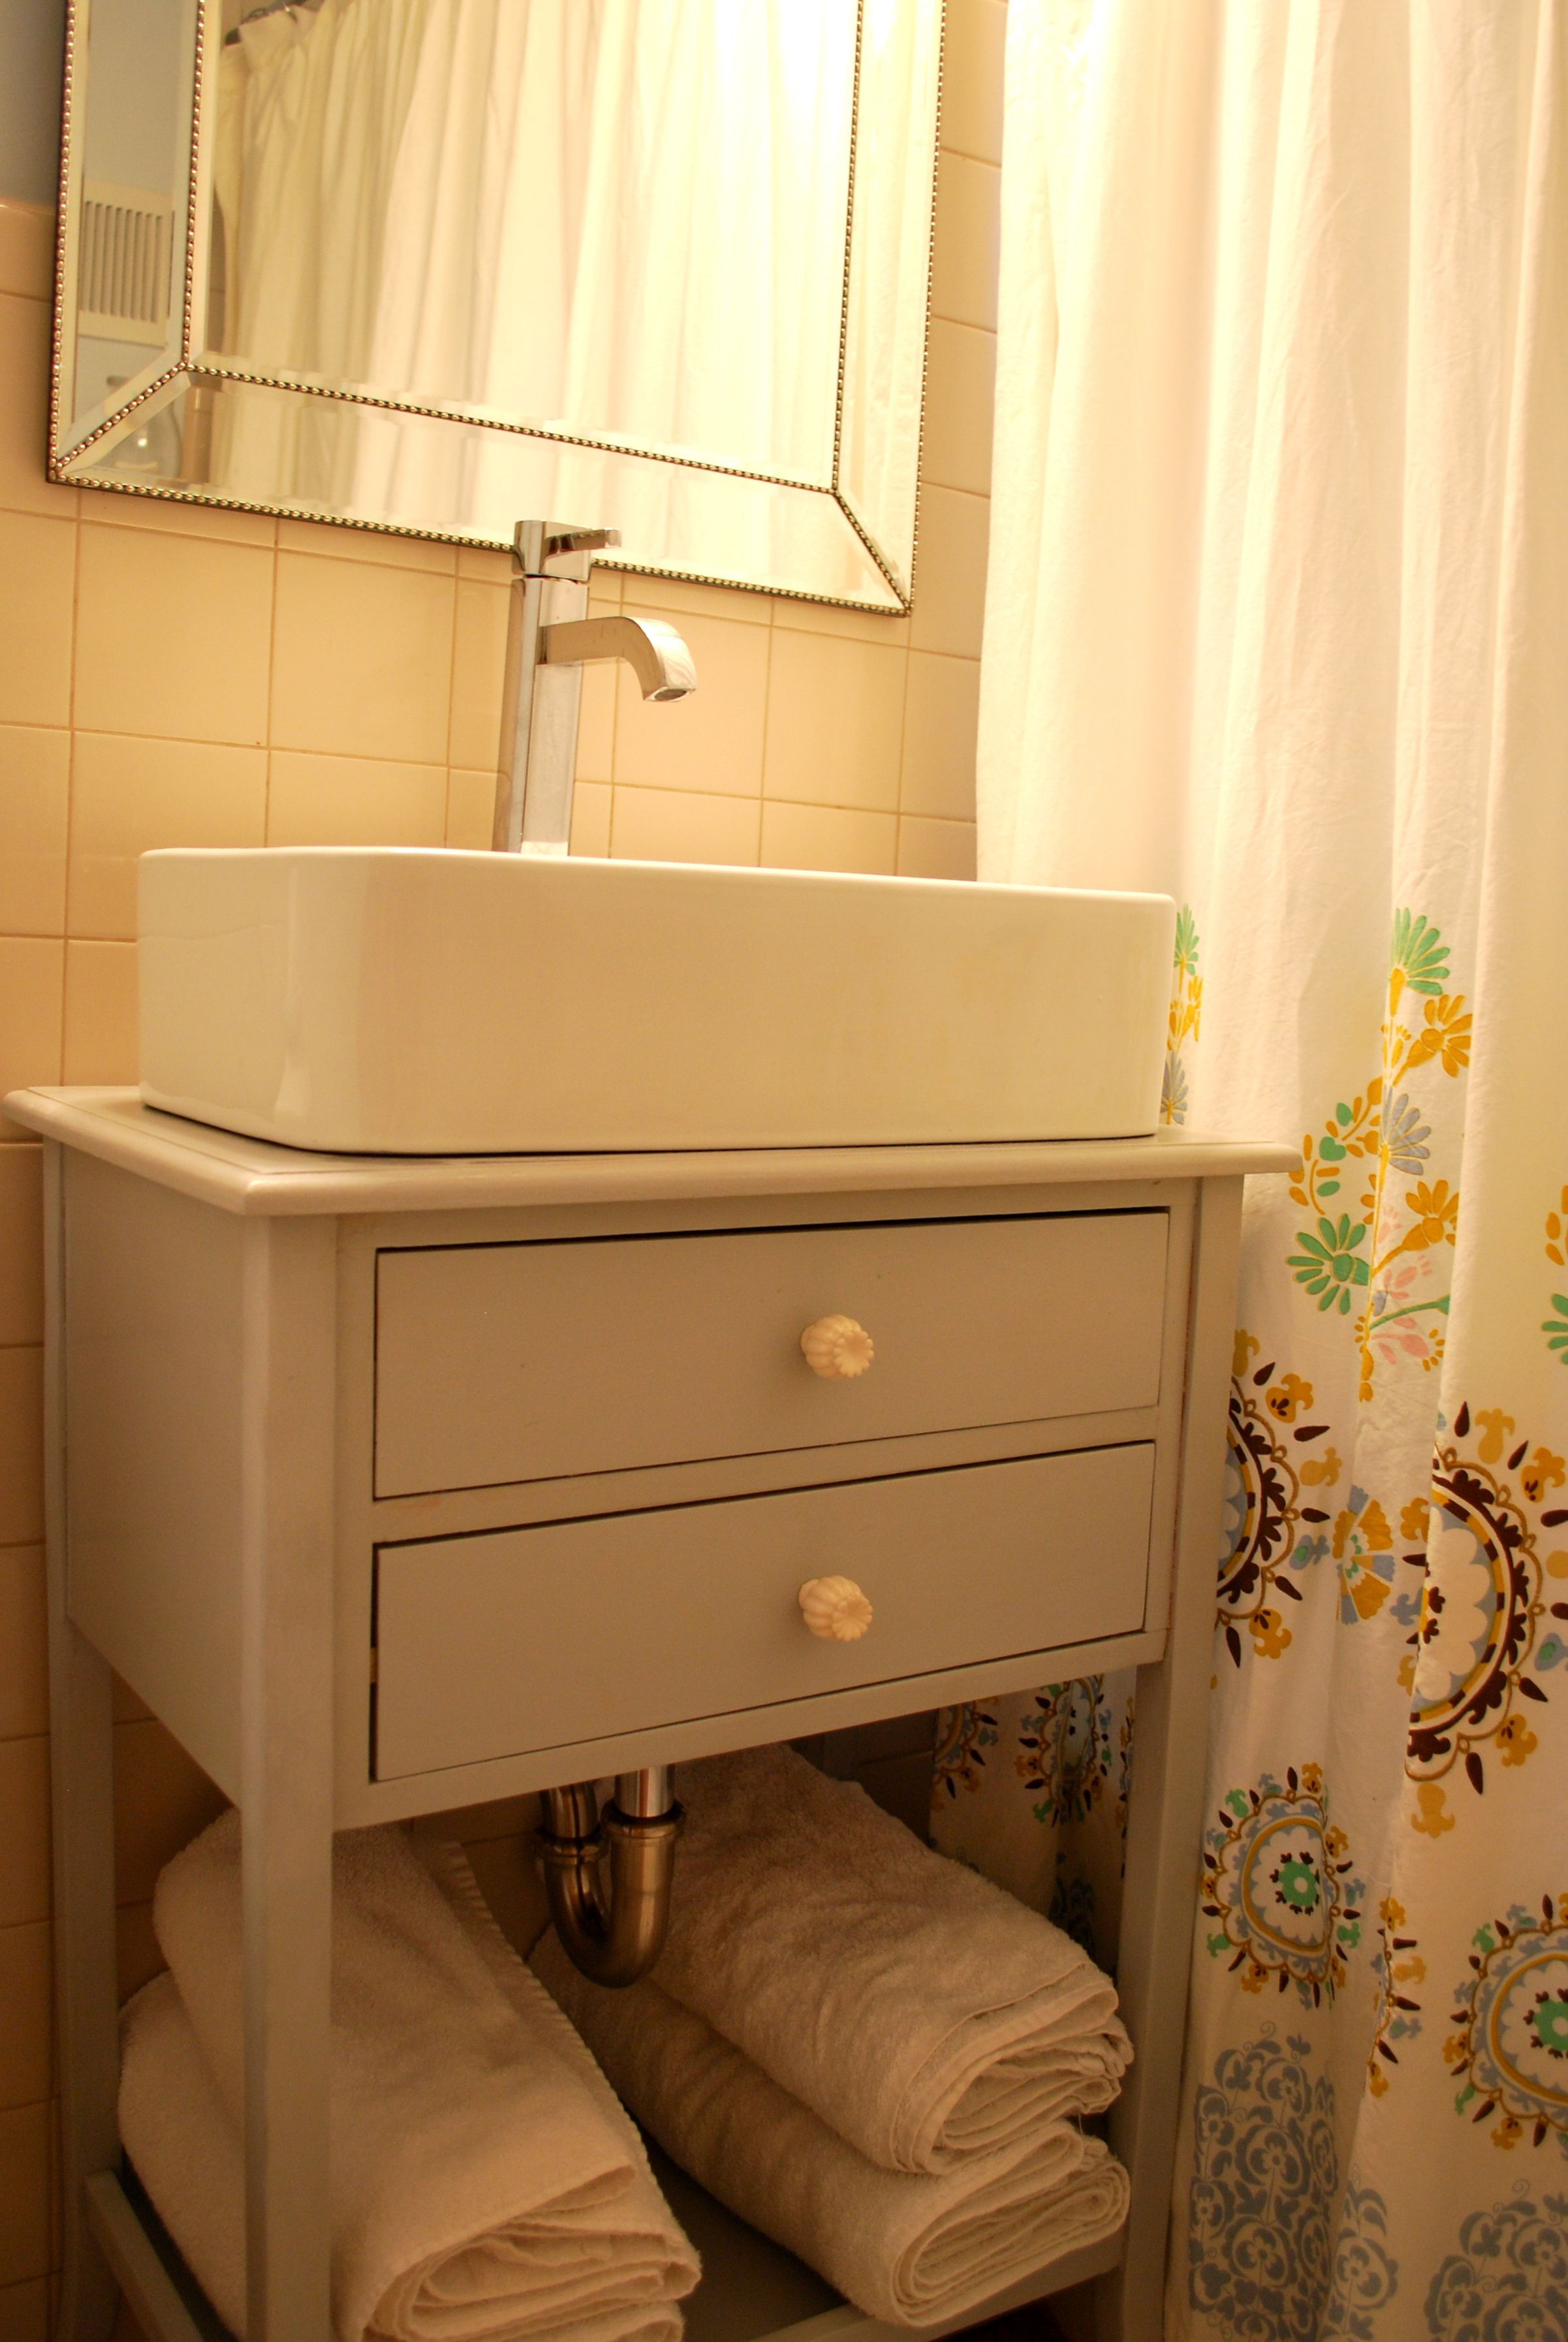 How To Make A Bathroom Vanity Cabinet Diy Vessel Sink Cabinet The Suburban Urbanist House To Home